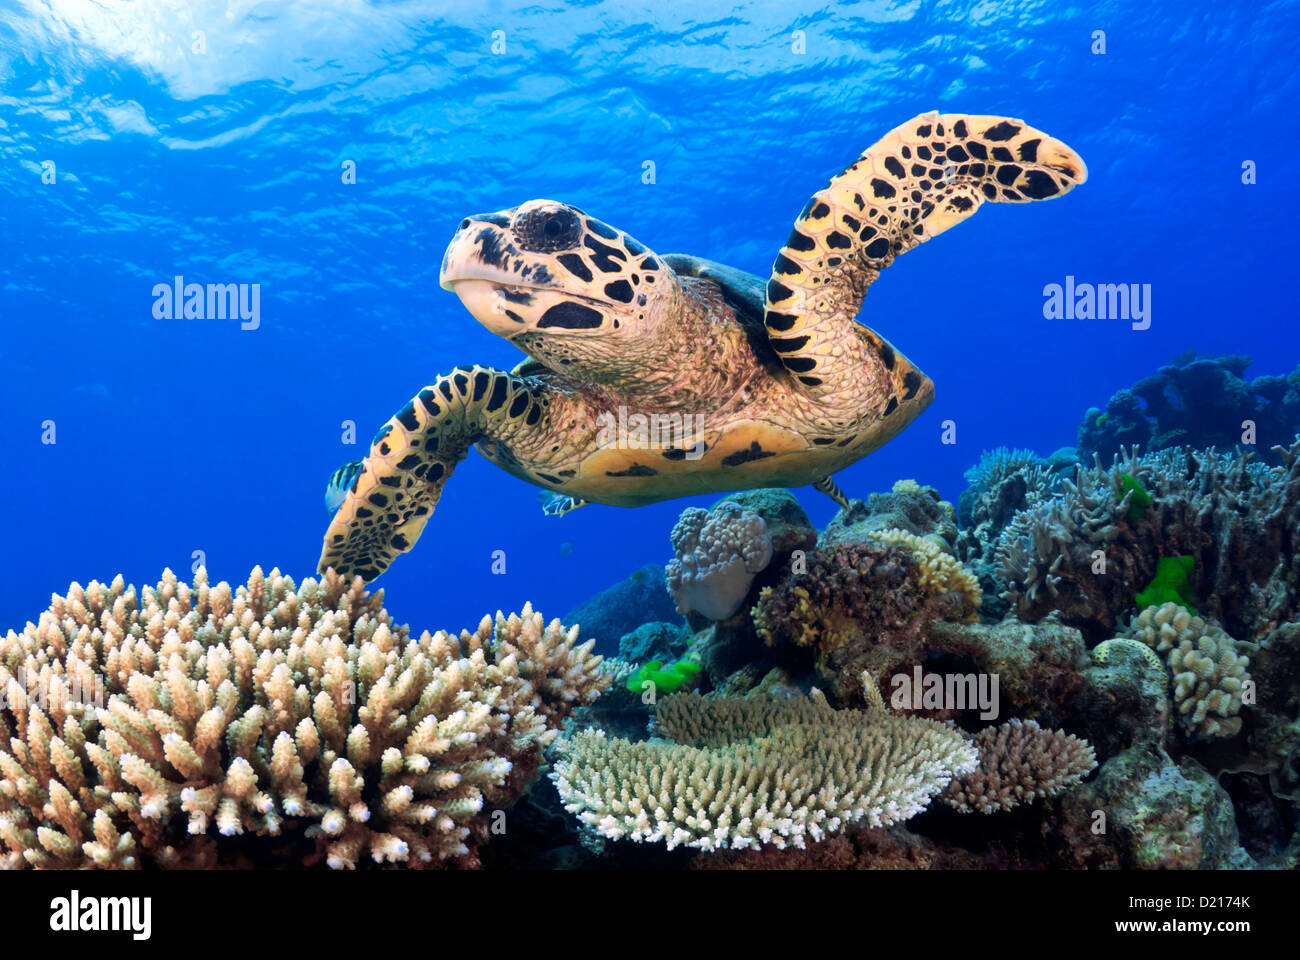 Hawksbill Sea Turtle Eretmochelys imbricata swimming over a Coral Reef, Great Barrier Reef, Coral Sea, Queensland, - Stock Image